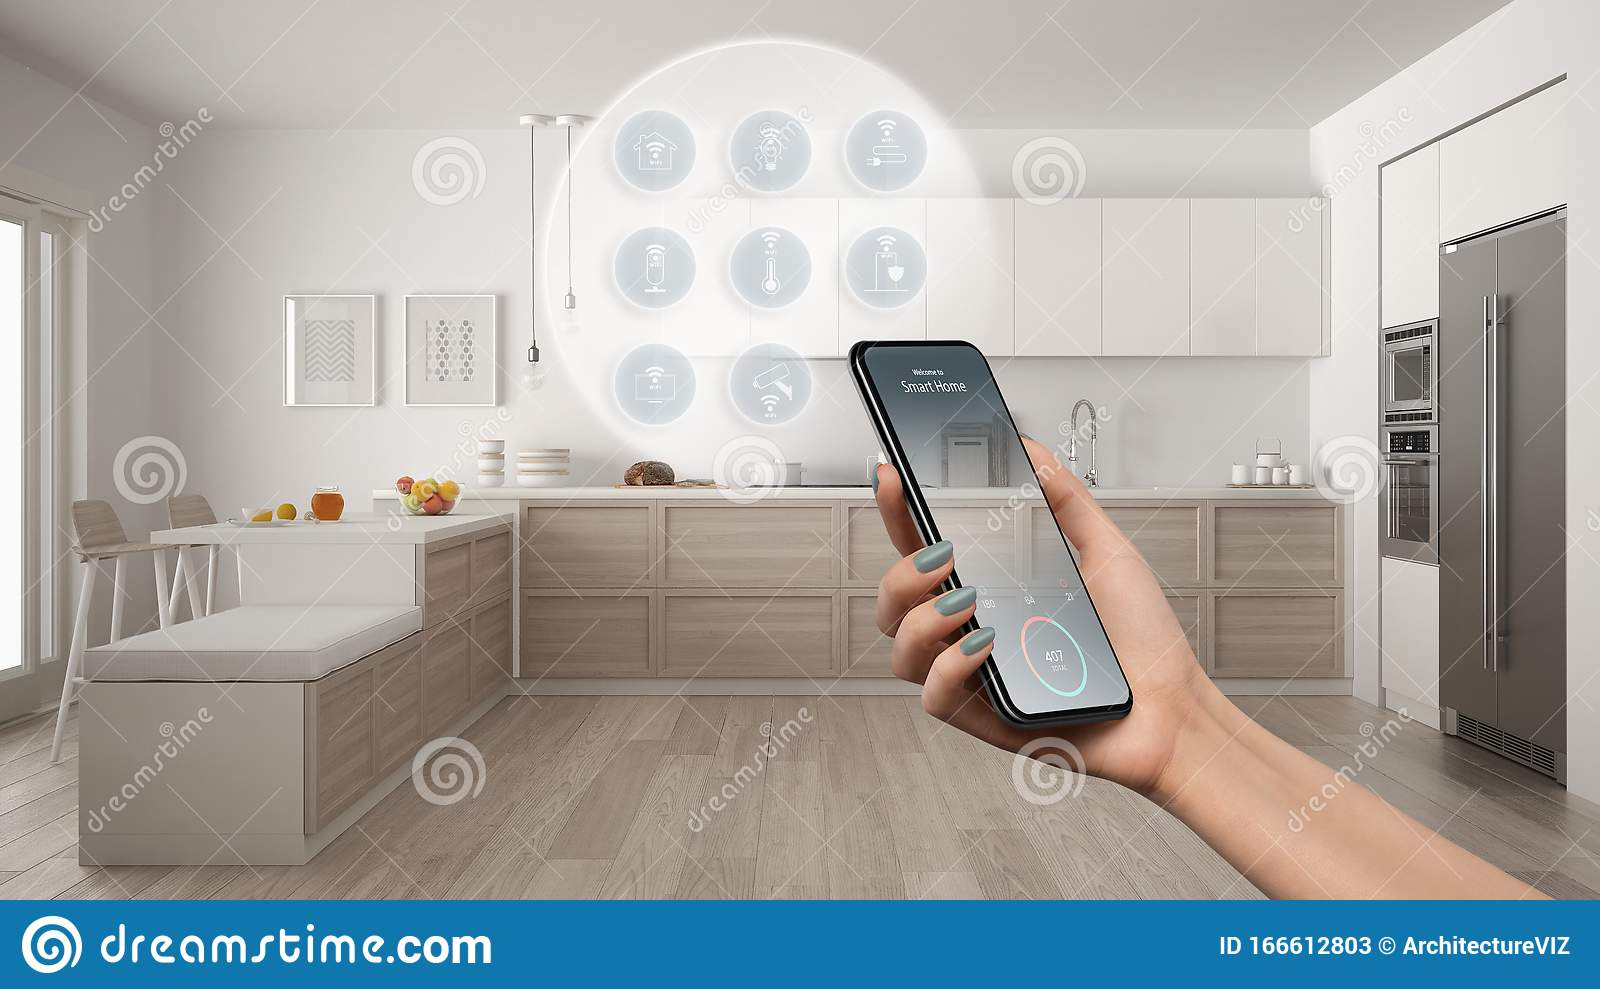 Smart Home Technology Interface On Phone App Augmented Reality Internet Of Things Interior Design Of Modern Kitchen With Stock Image Image Of Application Hand 166612803